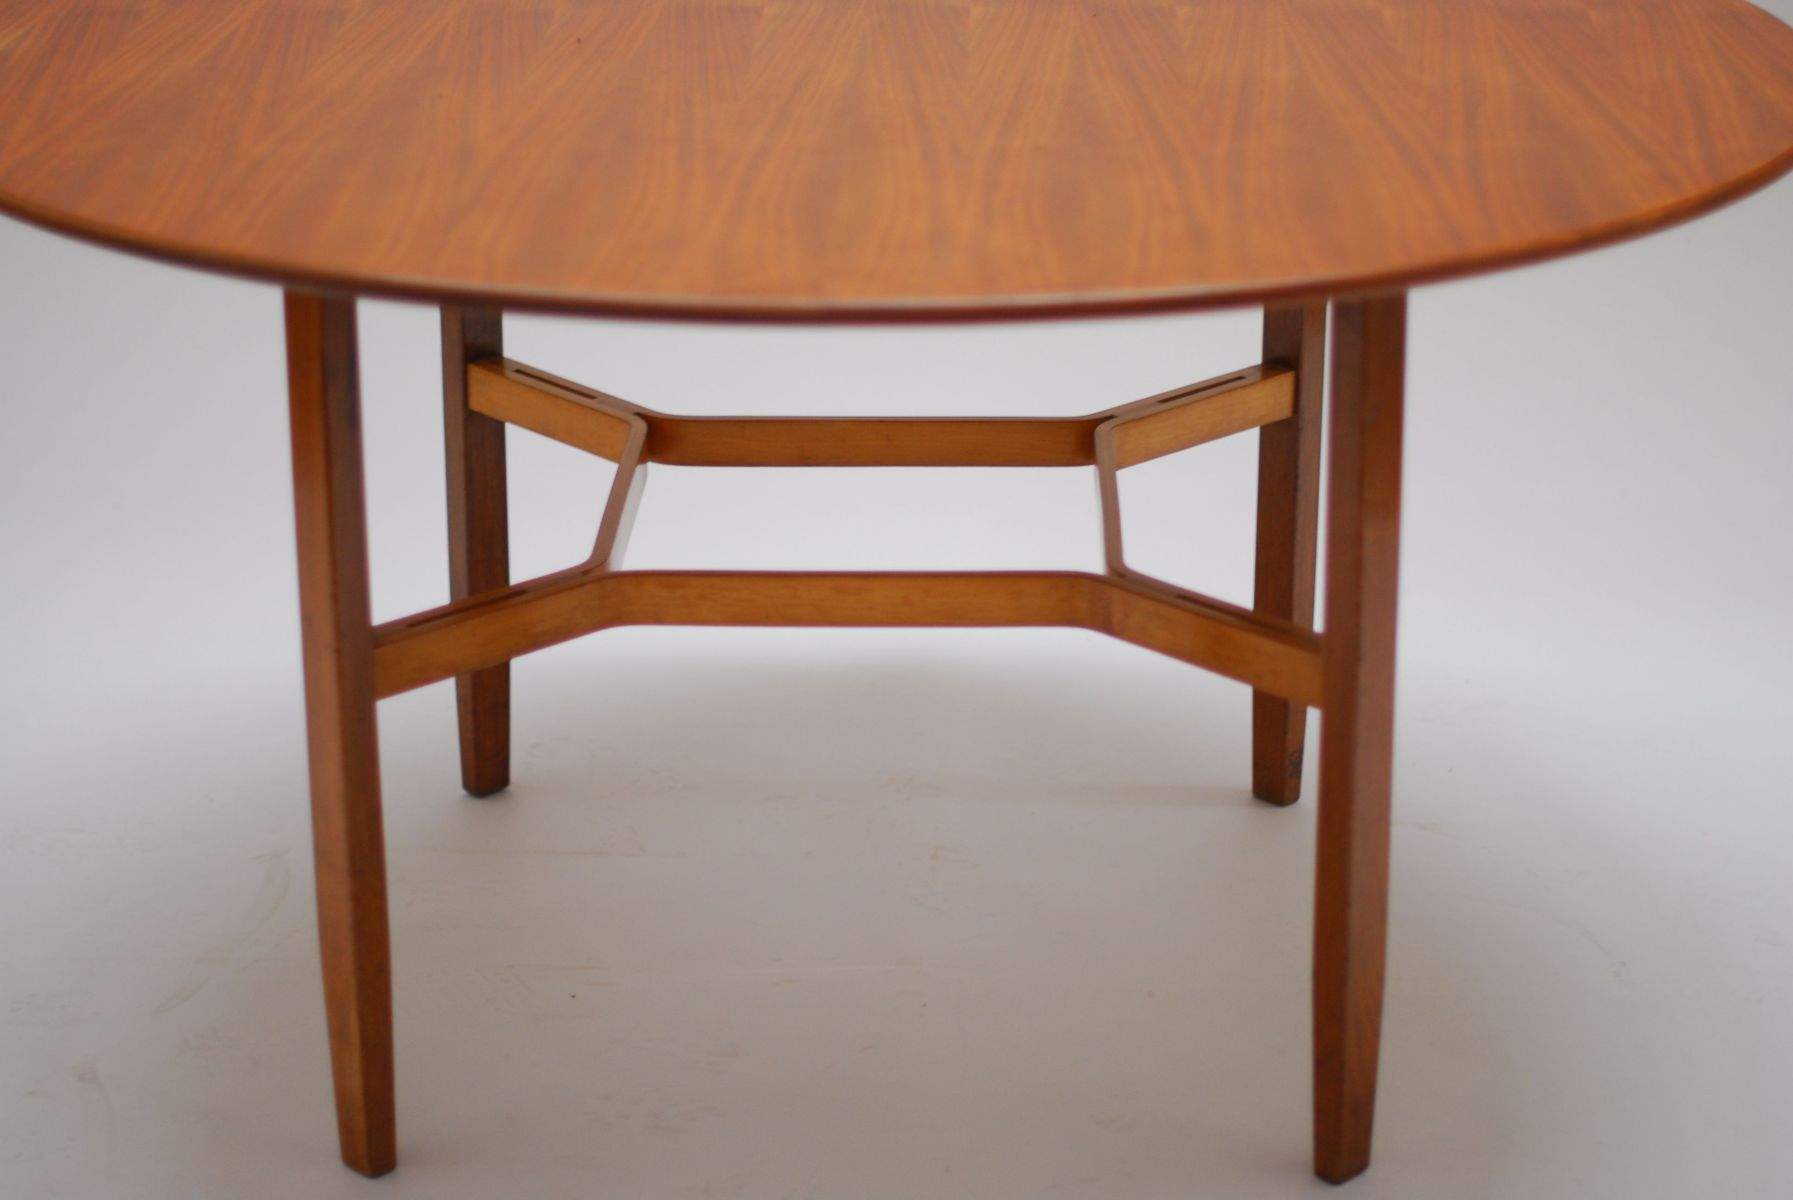 Walnut Dining Table by Lewis Butler for Knoll 1955 for sale at Pamono